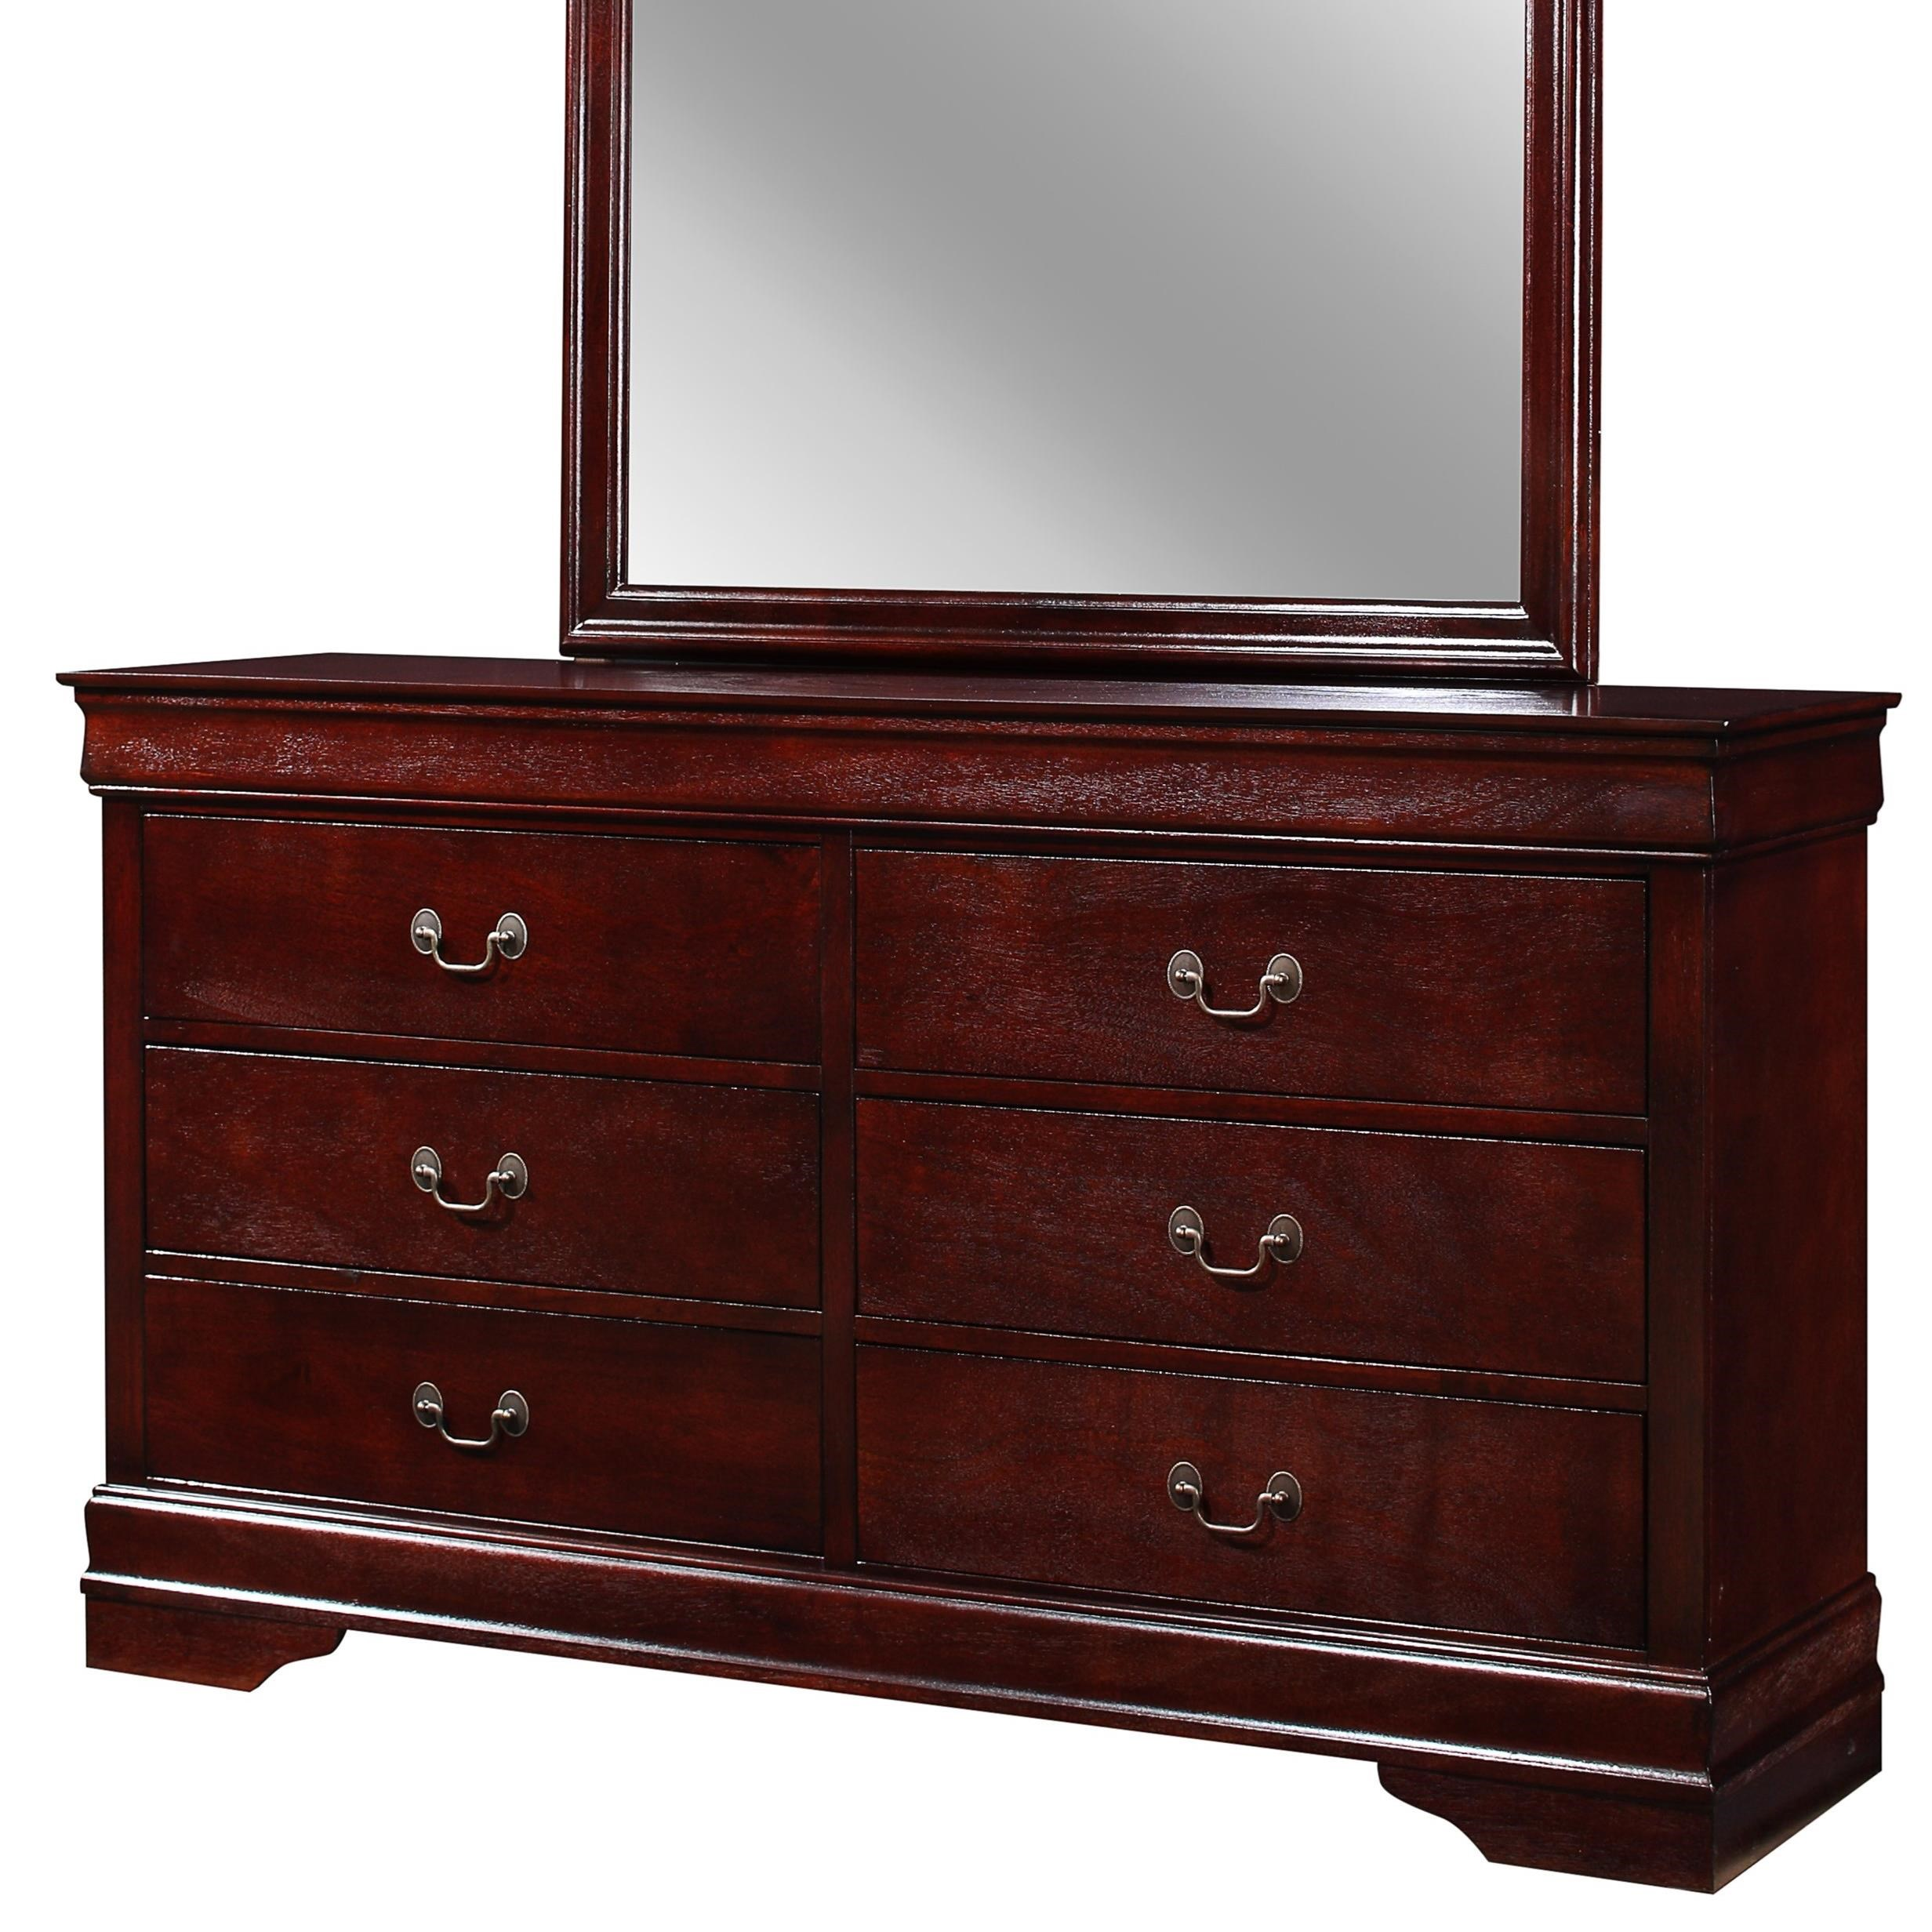 Louis Philip 6 Drawer Dresser by Crown Mark at Catalog Outlet